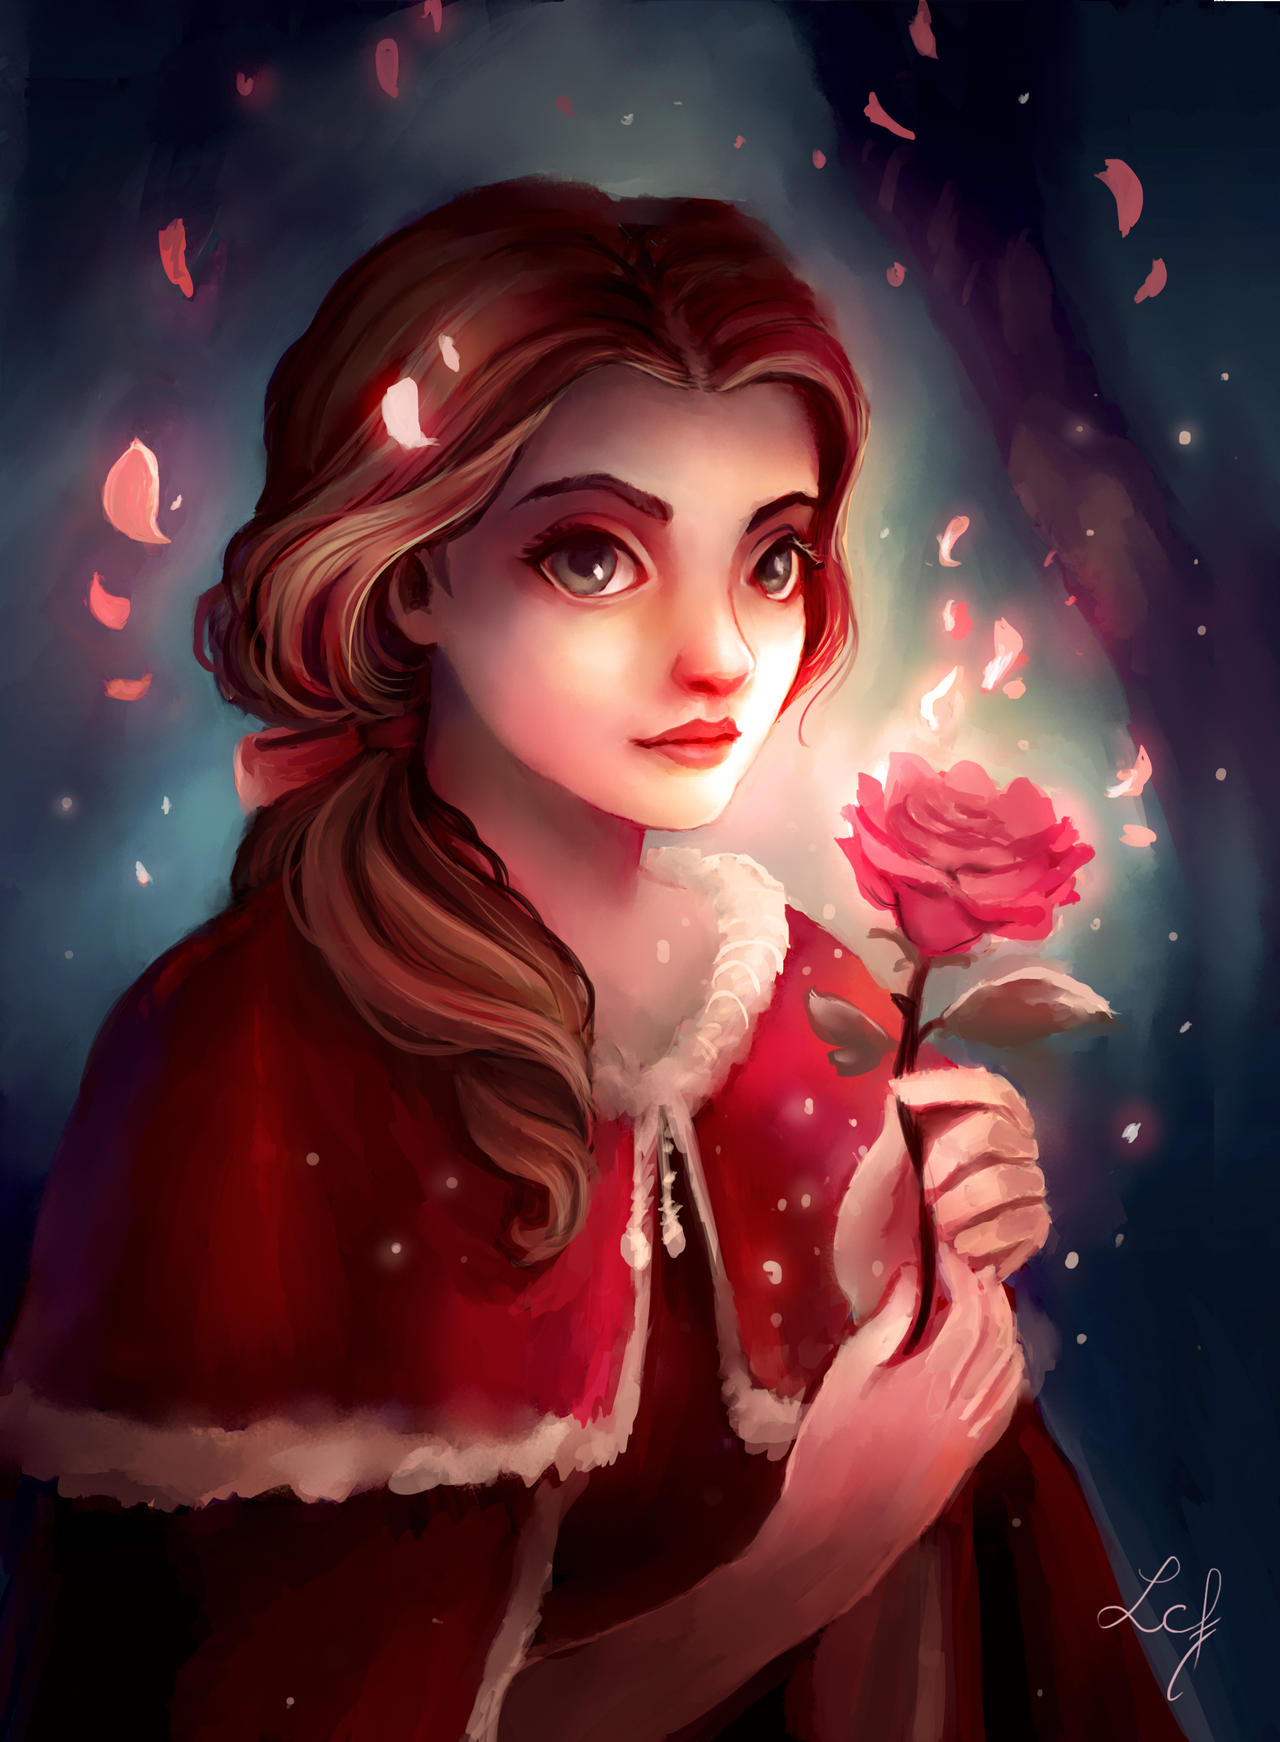 Belle and the Rose by Ludmila Cera Foce on DeviantArt